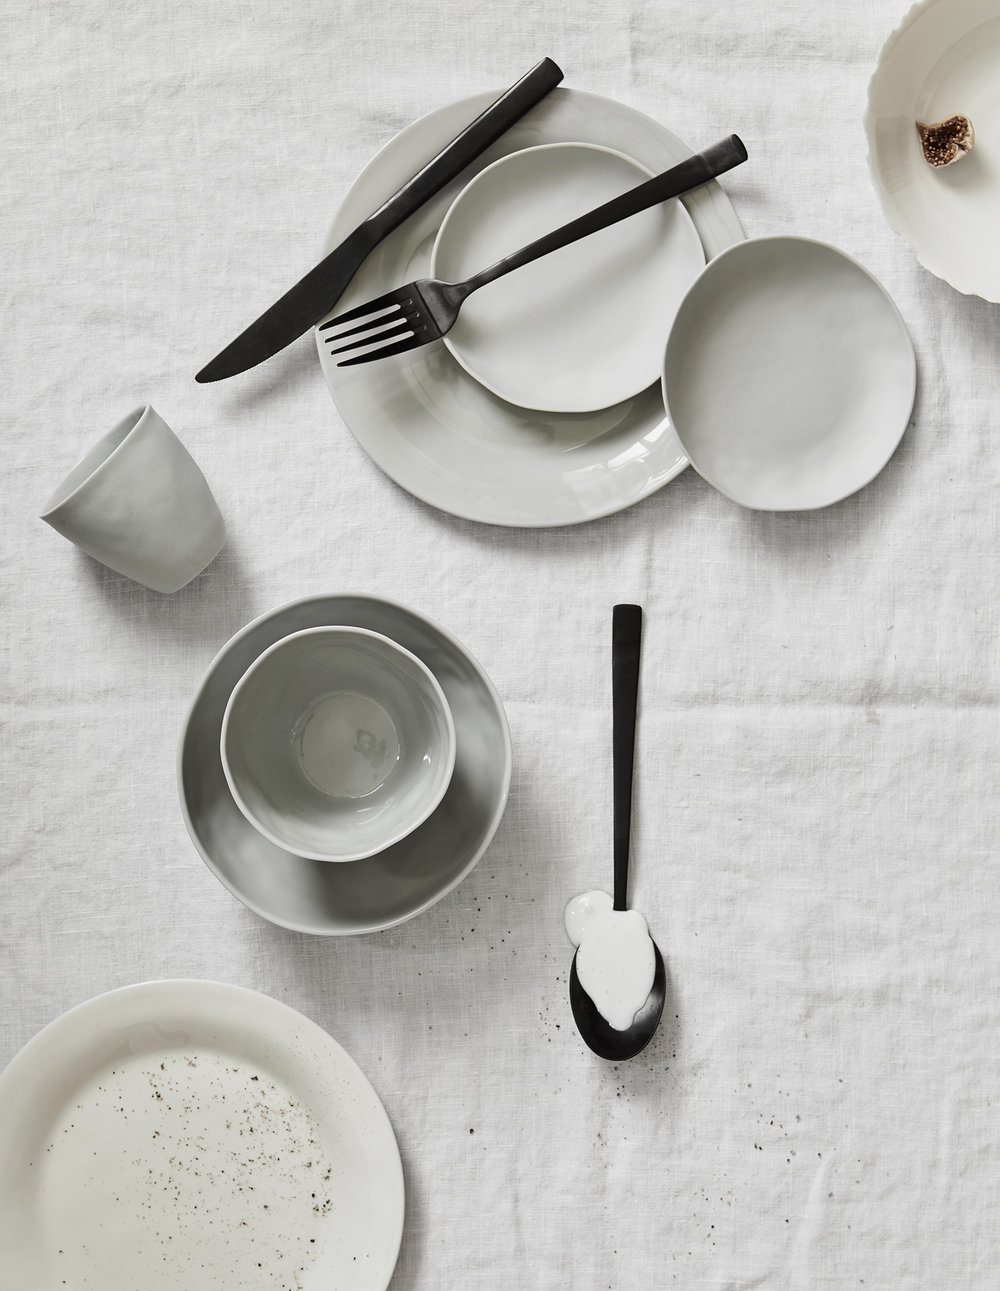 Set your table - Patchy collection